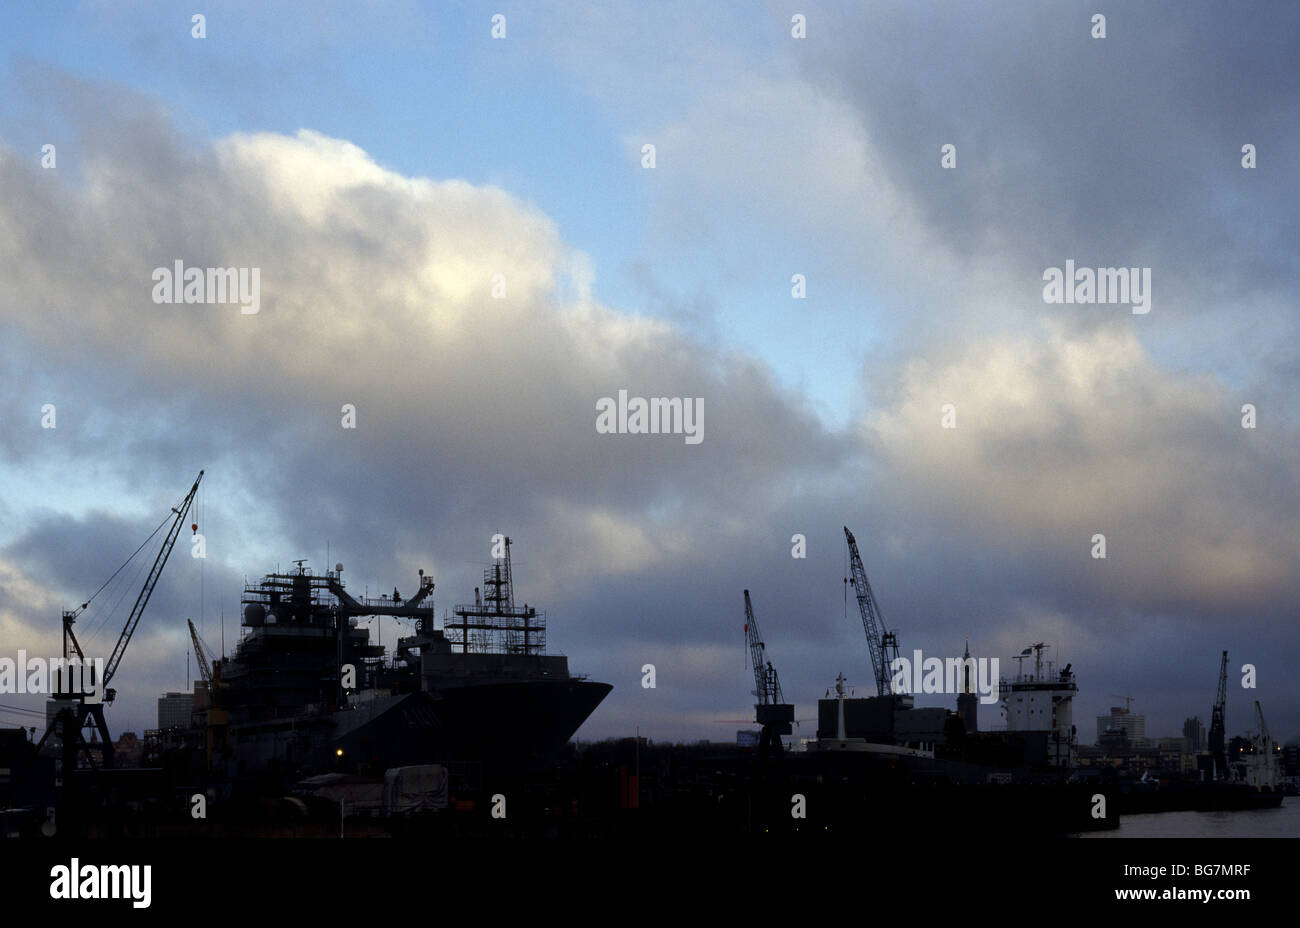 Dec 12, 2009 - German Navy replenishment oiler Berlin (A1411) at Norderwerft ship yard in the German port of Hamburg. - Stock Image